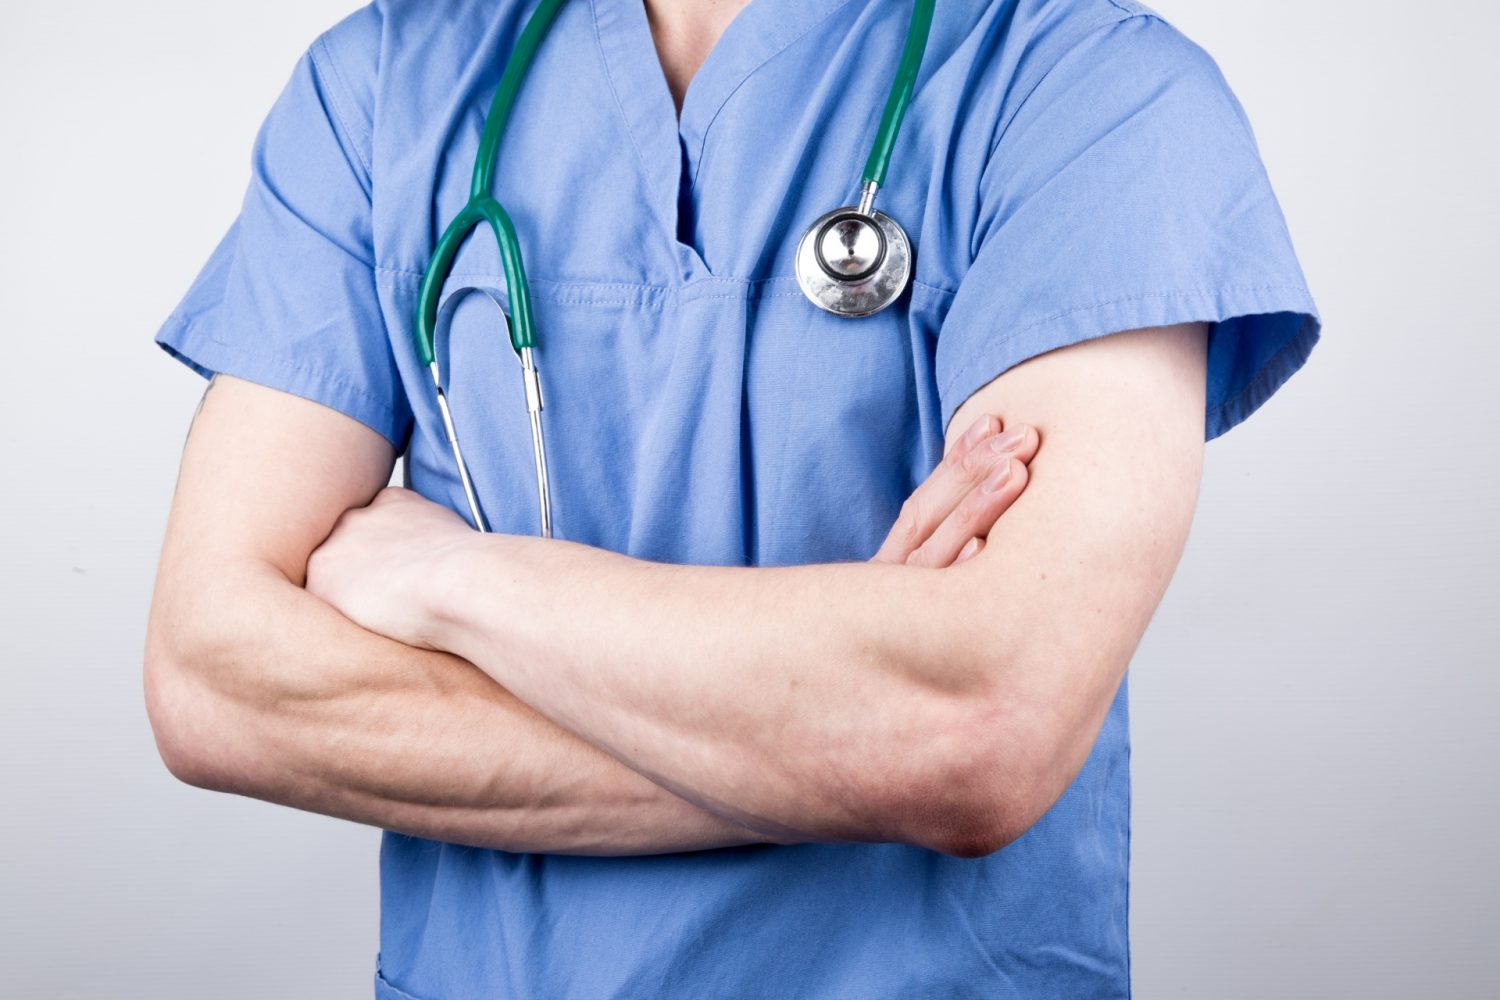 Special standards set for coal miners' doctors